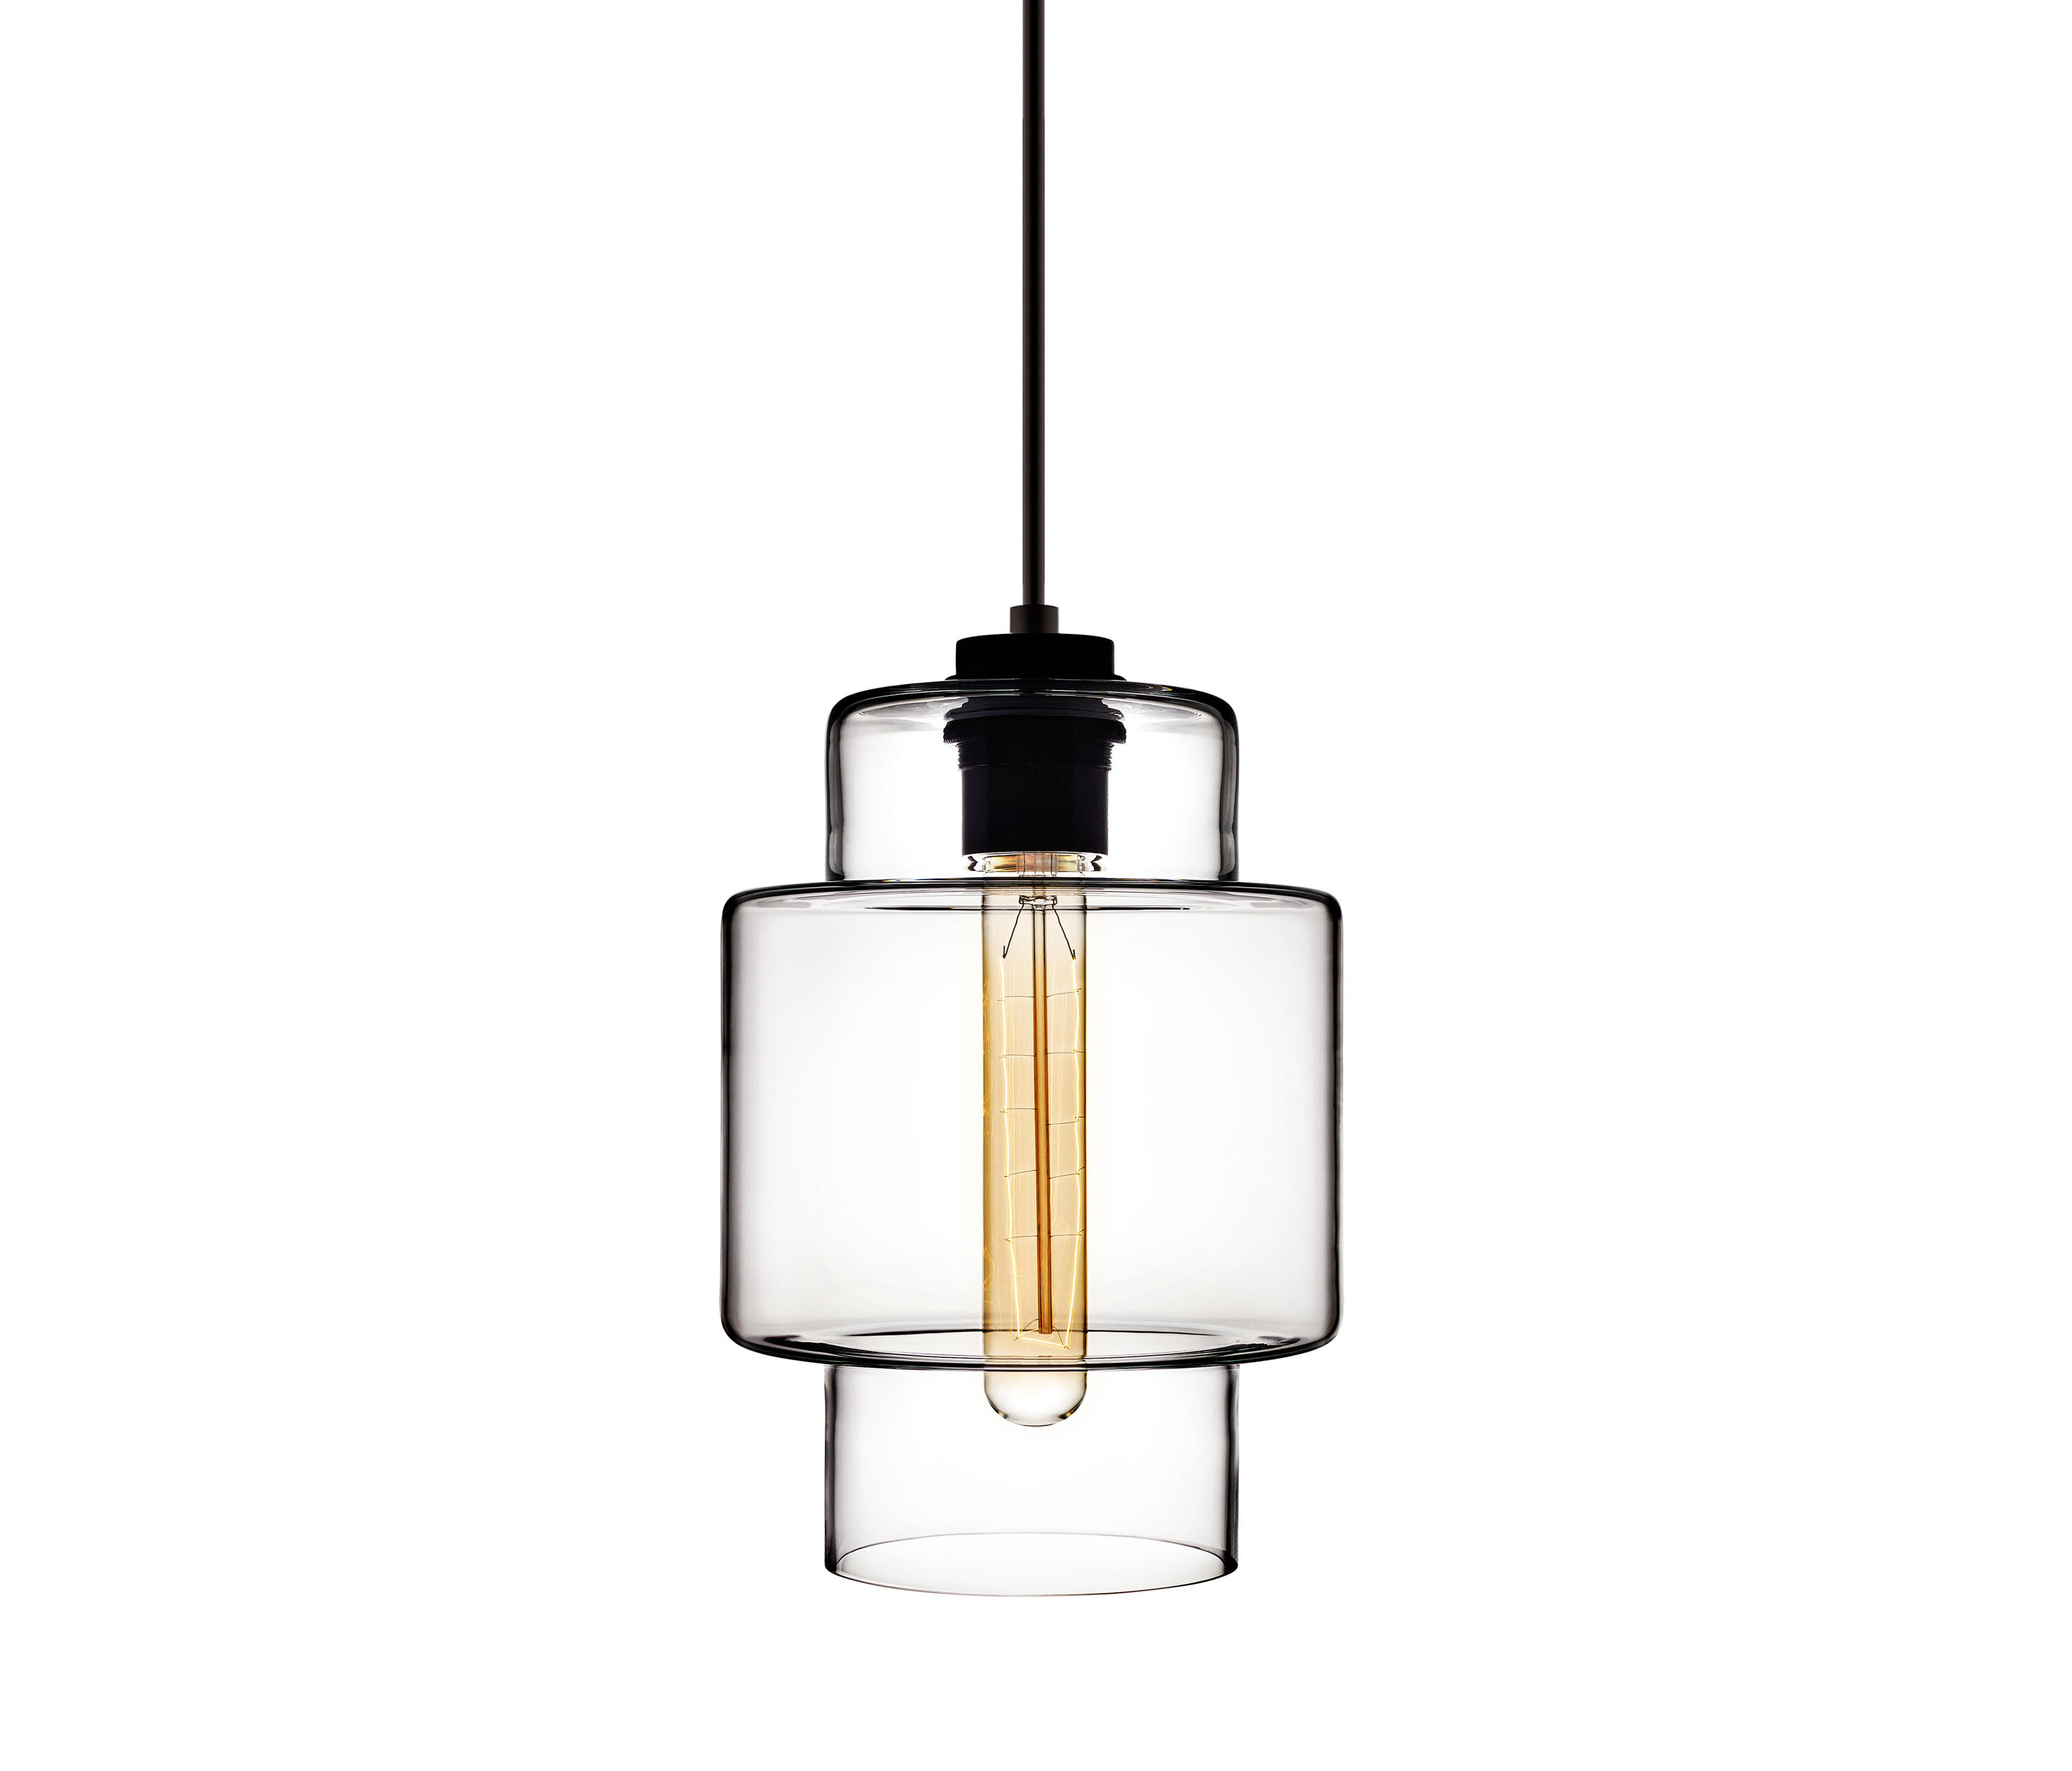 Axia Modern Pendant Light By Niche Suspended Lights